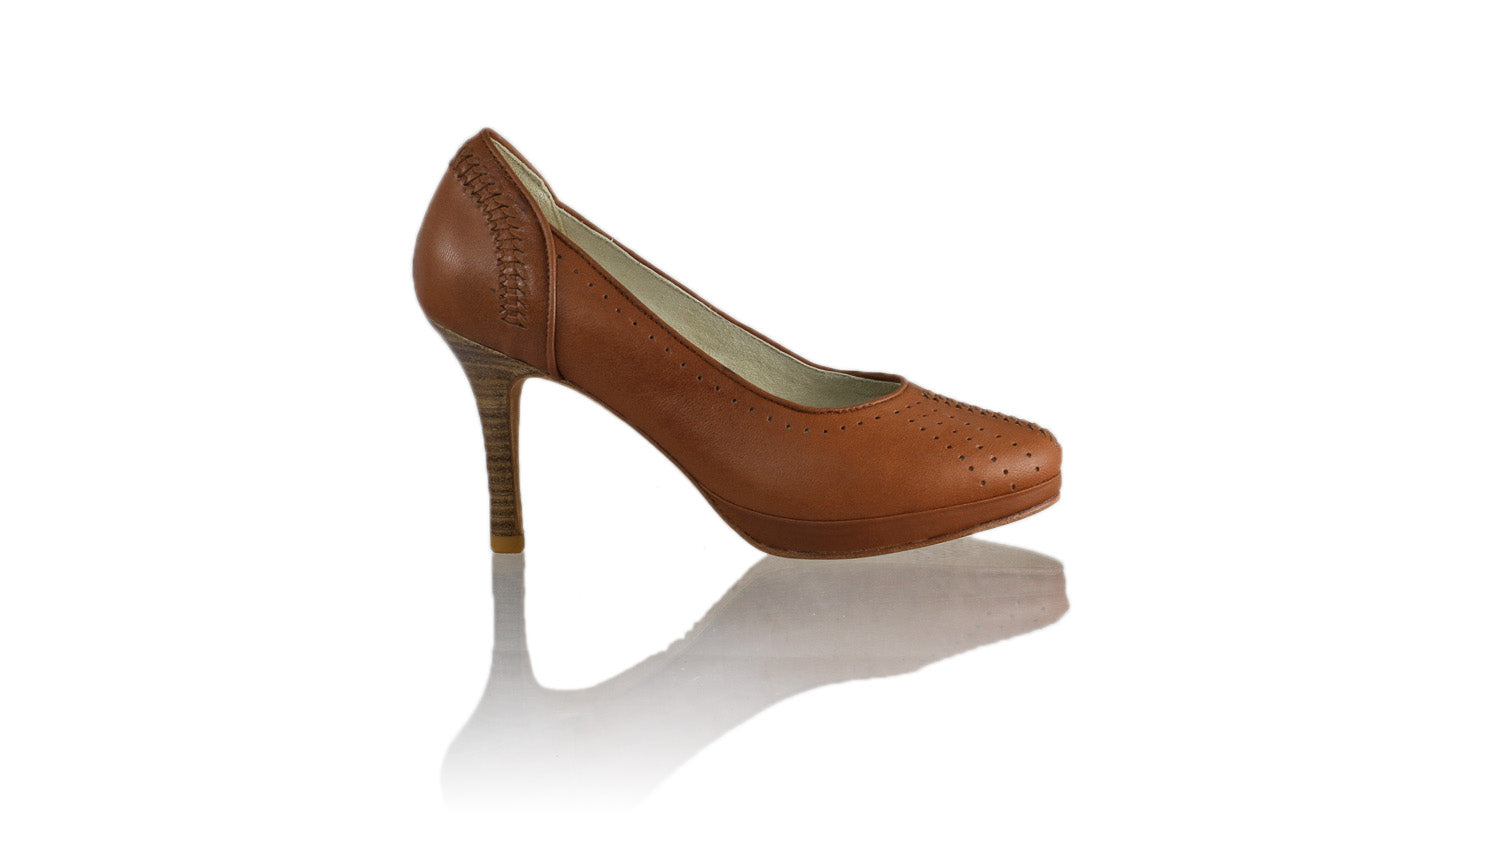 Leather-shoes-Donna 90mm PF - All Brown-pumps highheel-NILUH DJELANTIK-NILUH DJELANTIK